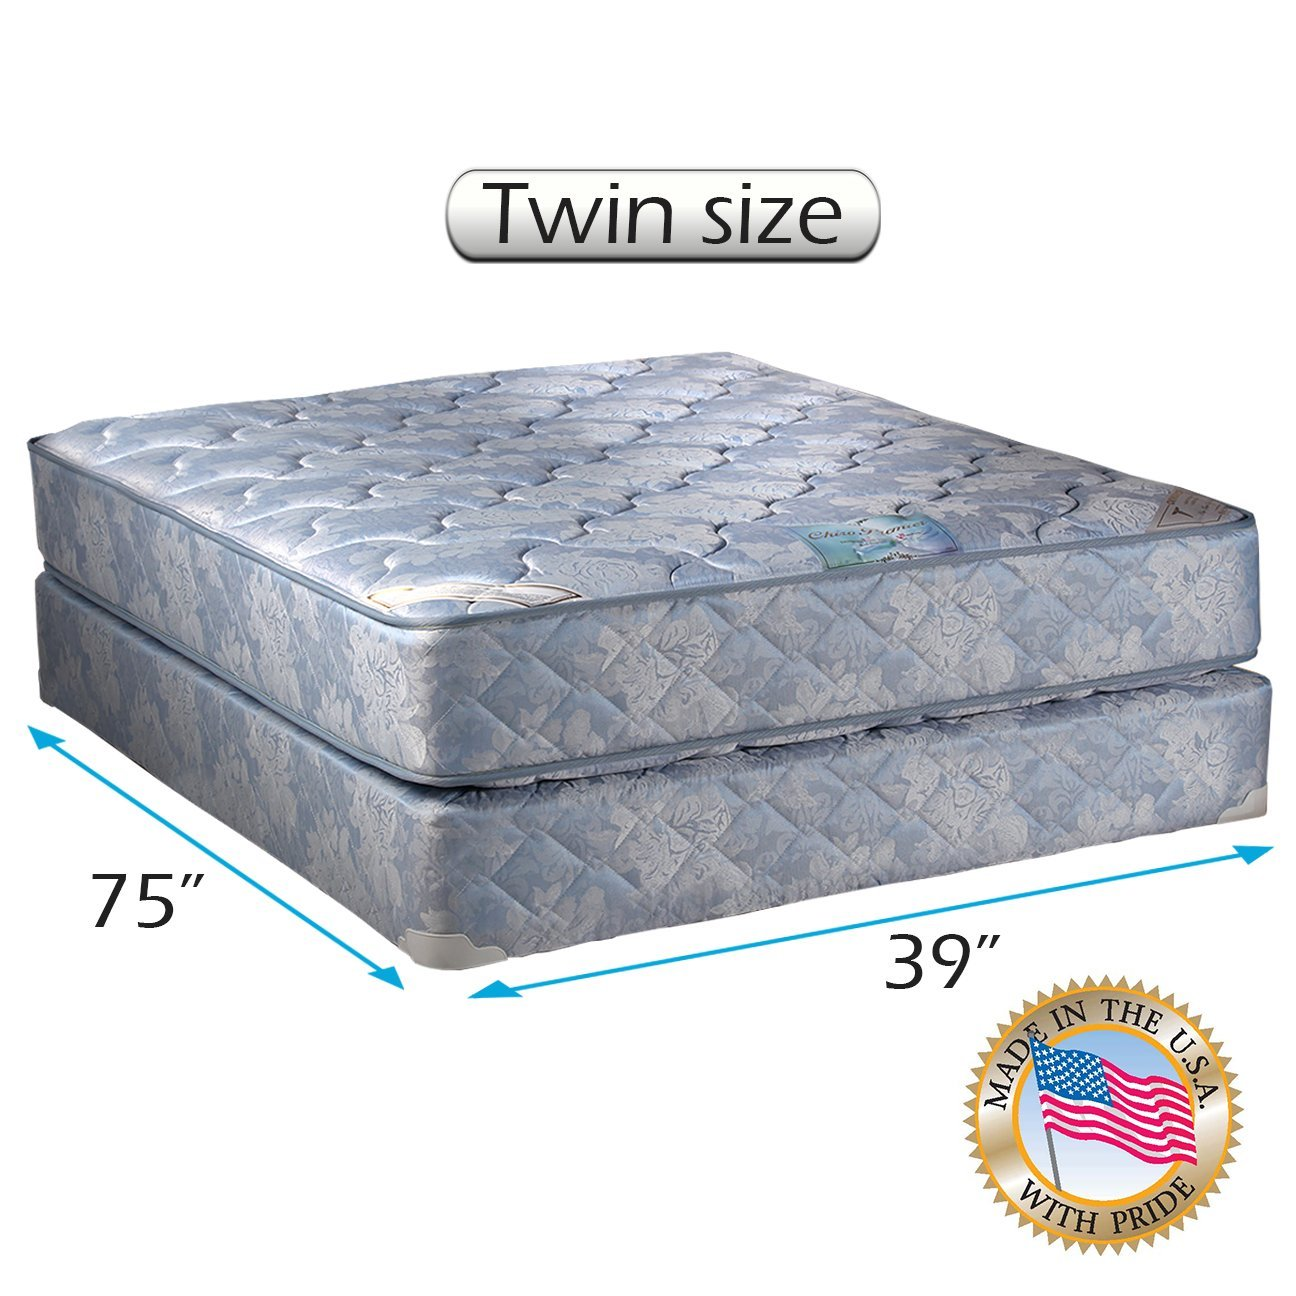 Chiro Premier 2-Sided Orthopedic (Blue Color) Twin Mattress Set with Bed Frame Included - Fully Assembled, Spinal Support, Superior Quality, Longlasting Comfort by Dream Solutions USA